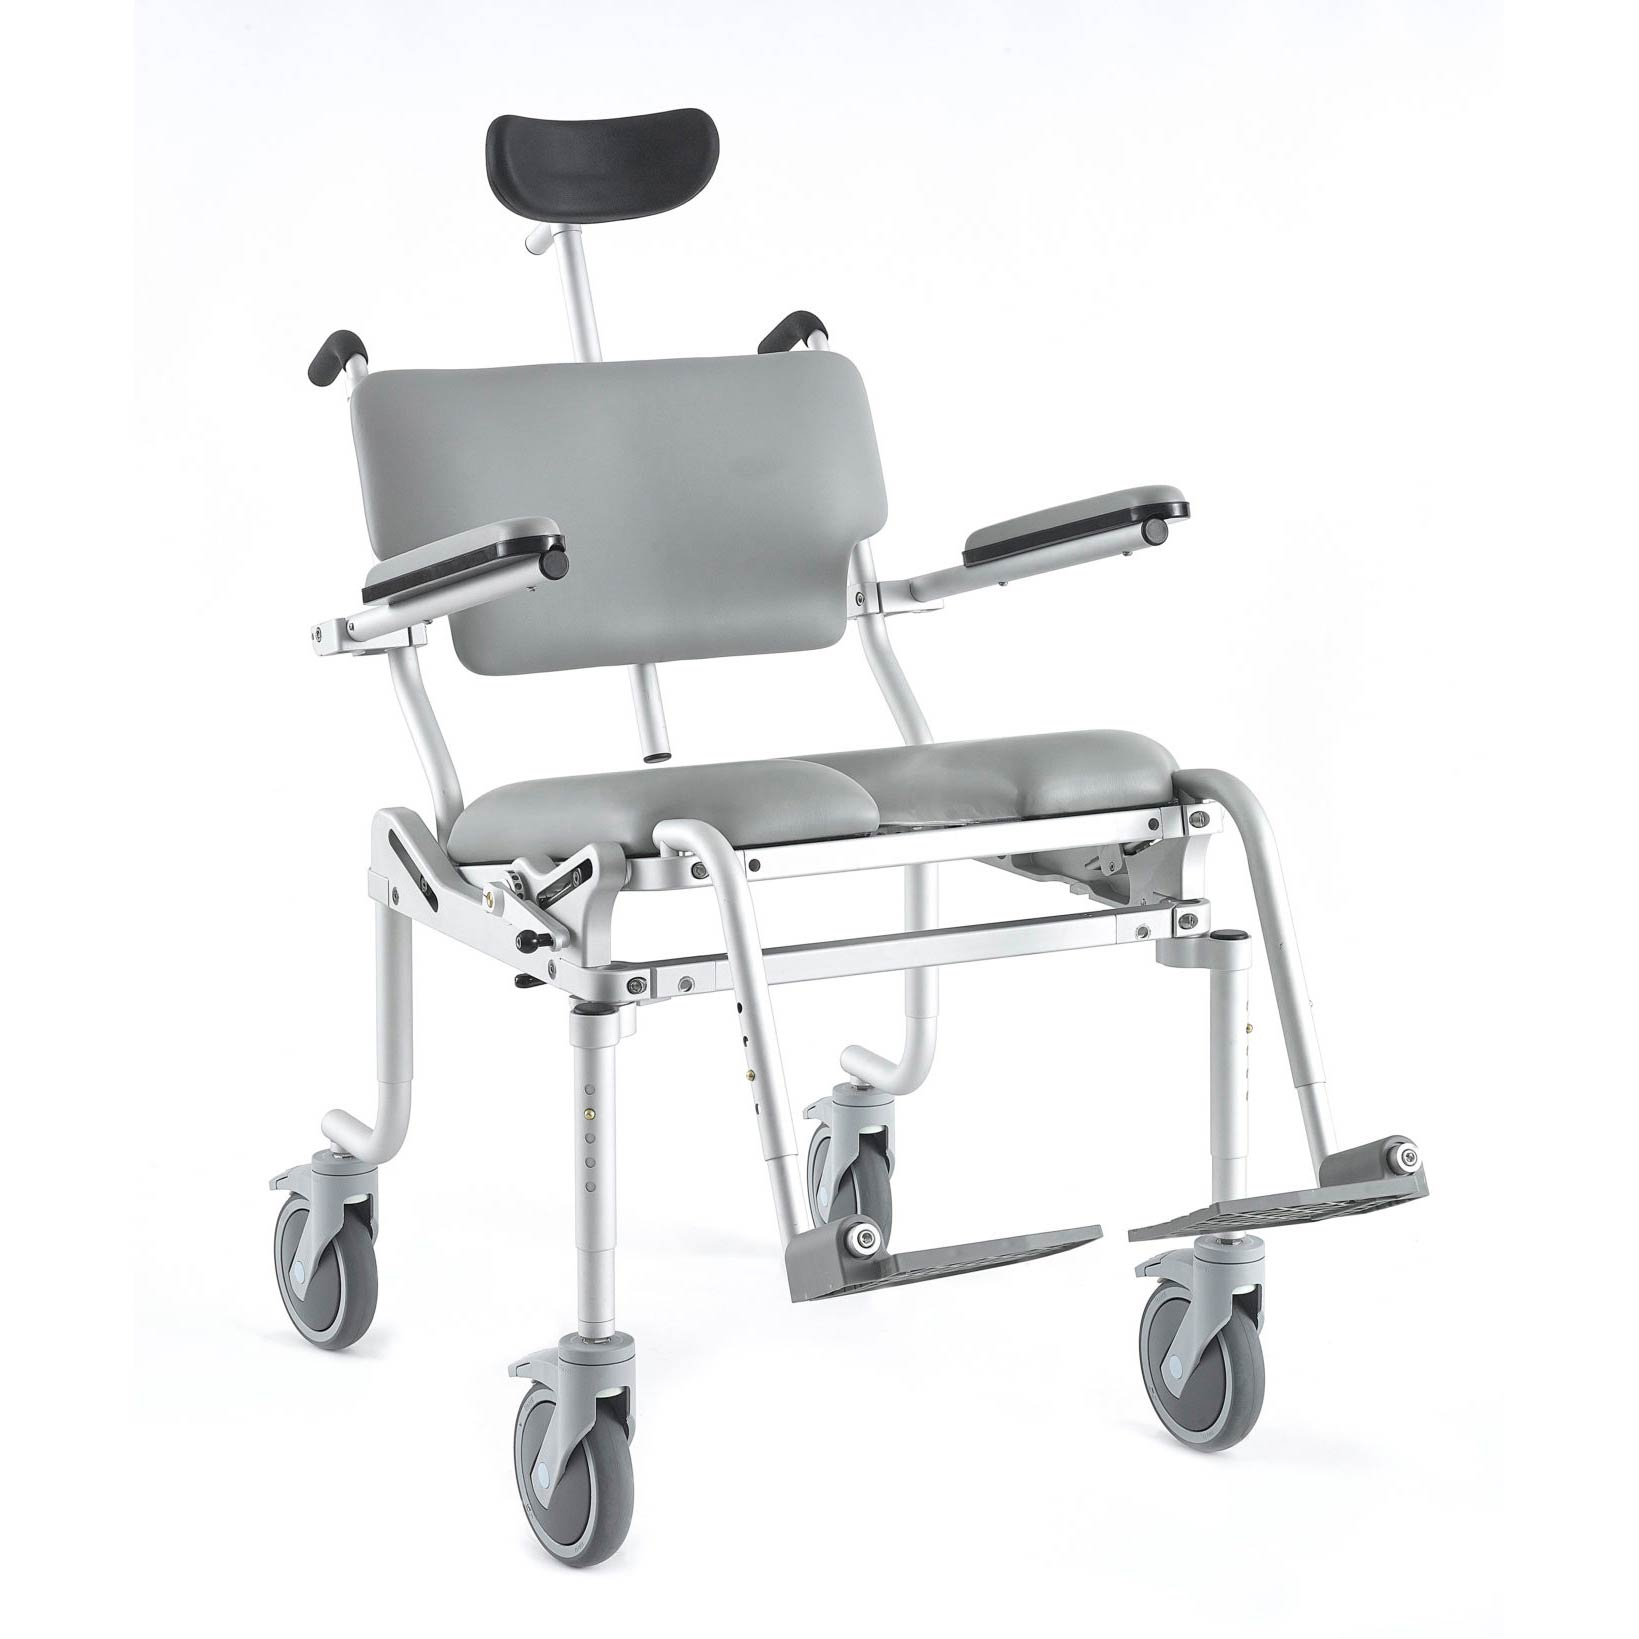 Nuprodx 4200 Tilt Roll-In-Shower Commode Chair | Medicaleshop